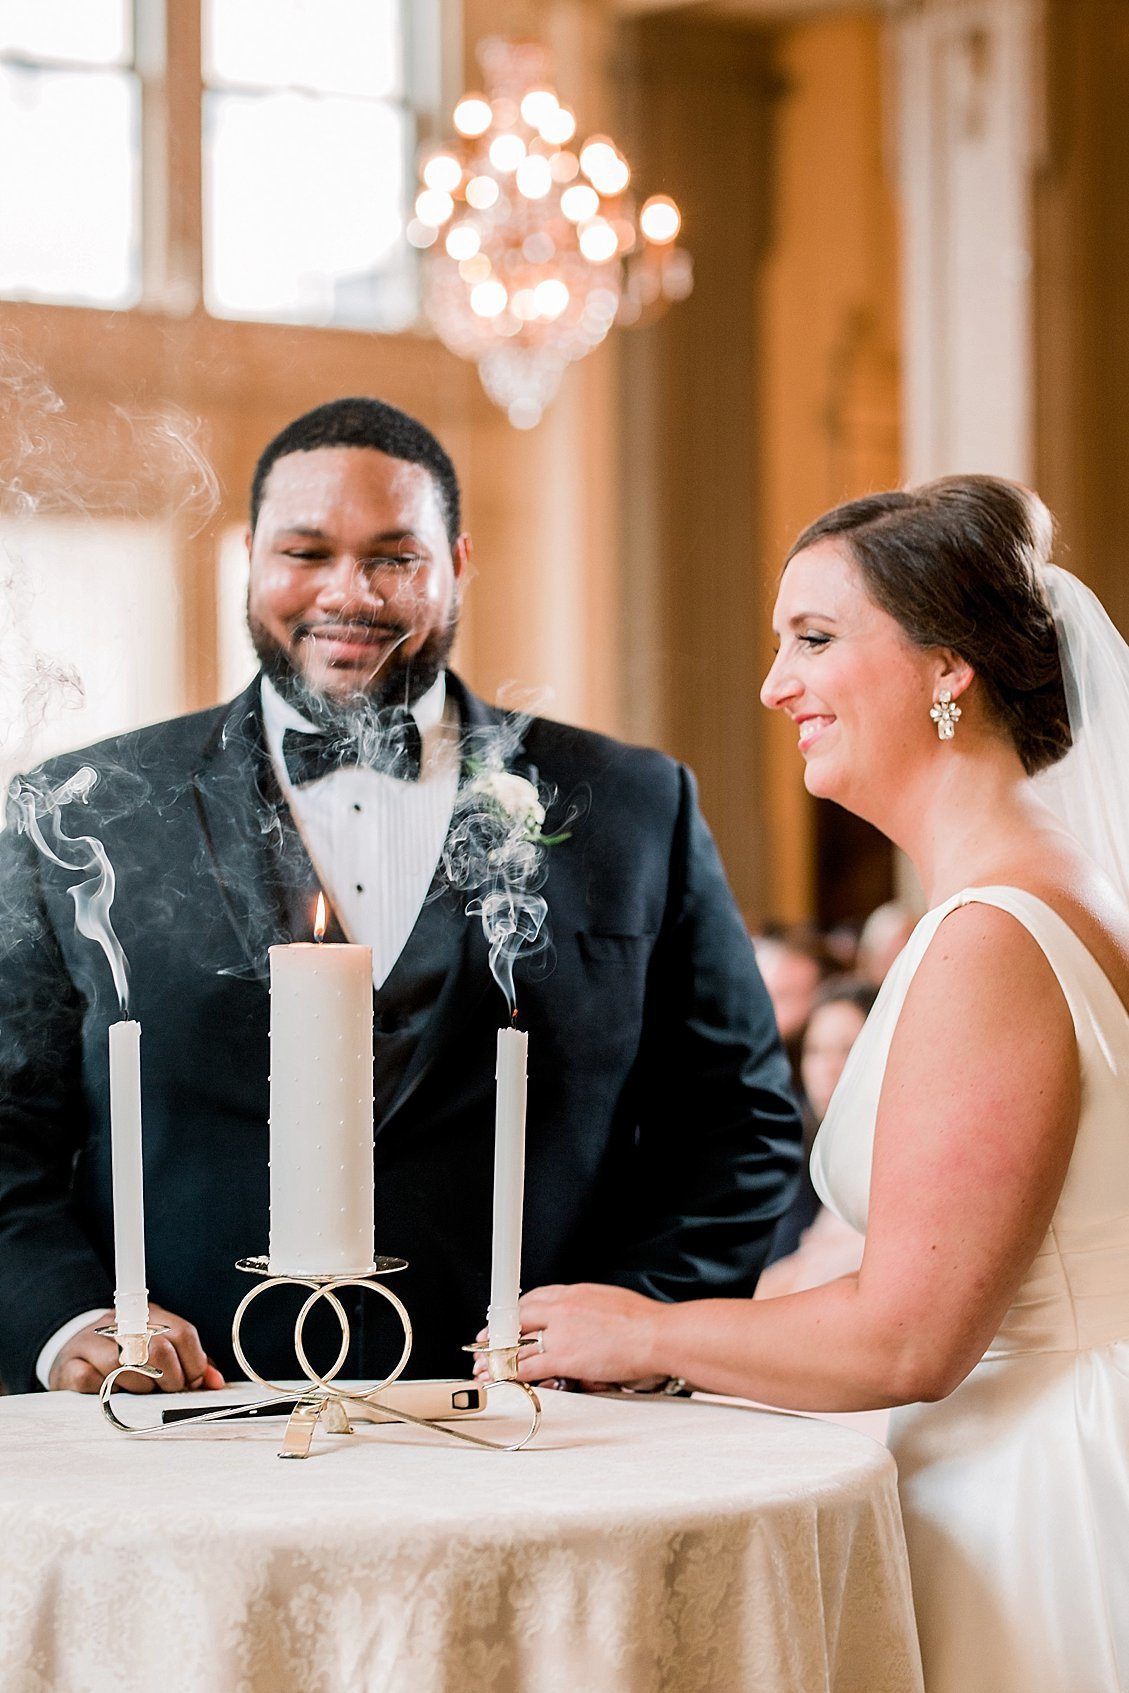 sharonelizabethphotography-johnmarshallballrooms-richmondvirginiaweddingphotographer-classicballroomwedding-johnmarshallballroomwedding{seq}4291